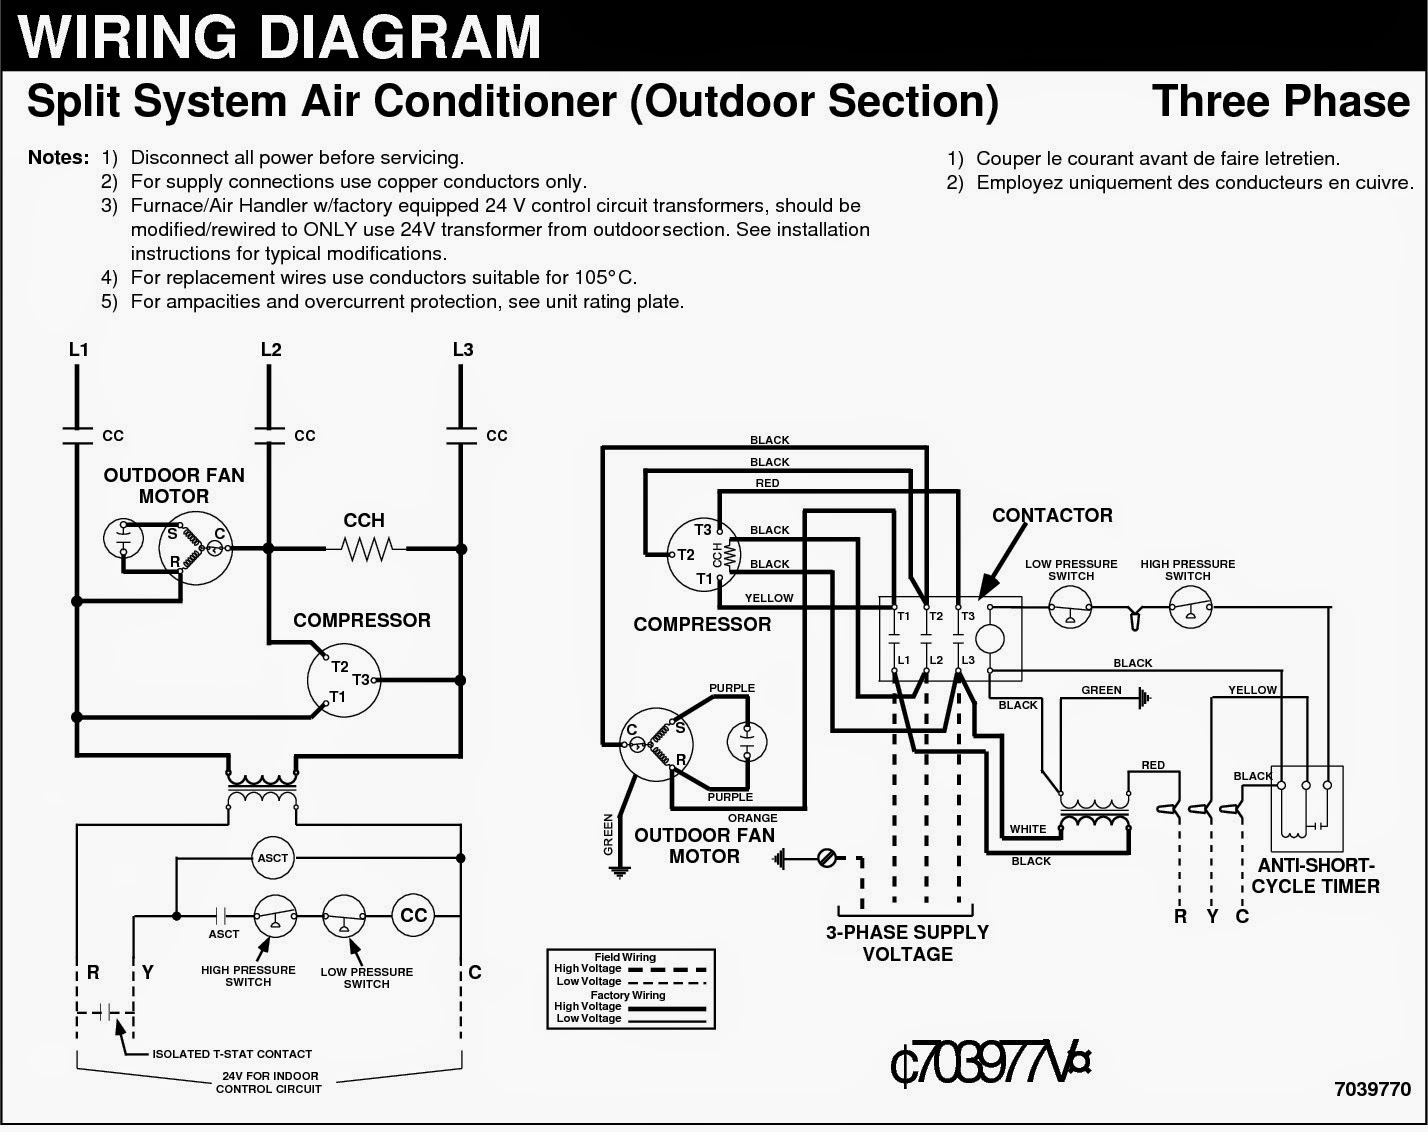 3+phase ac wire diagram fridge wire diagram \u2022 wiring diagrams j squared co Double Blade Sabers Ultra Sabers at alyssarenee.co